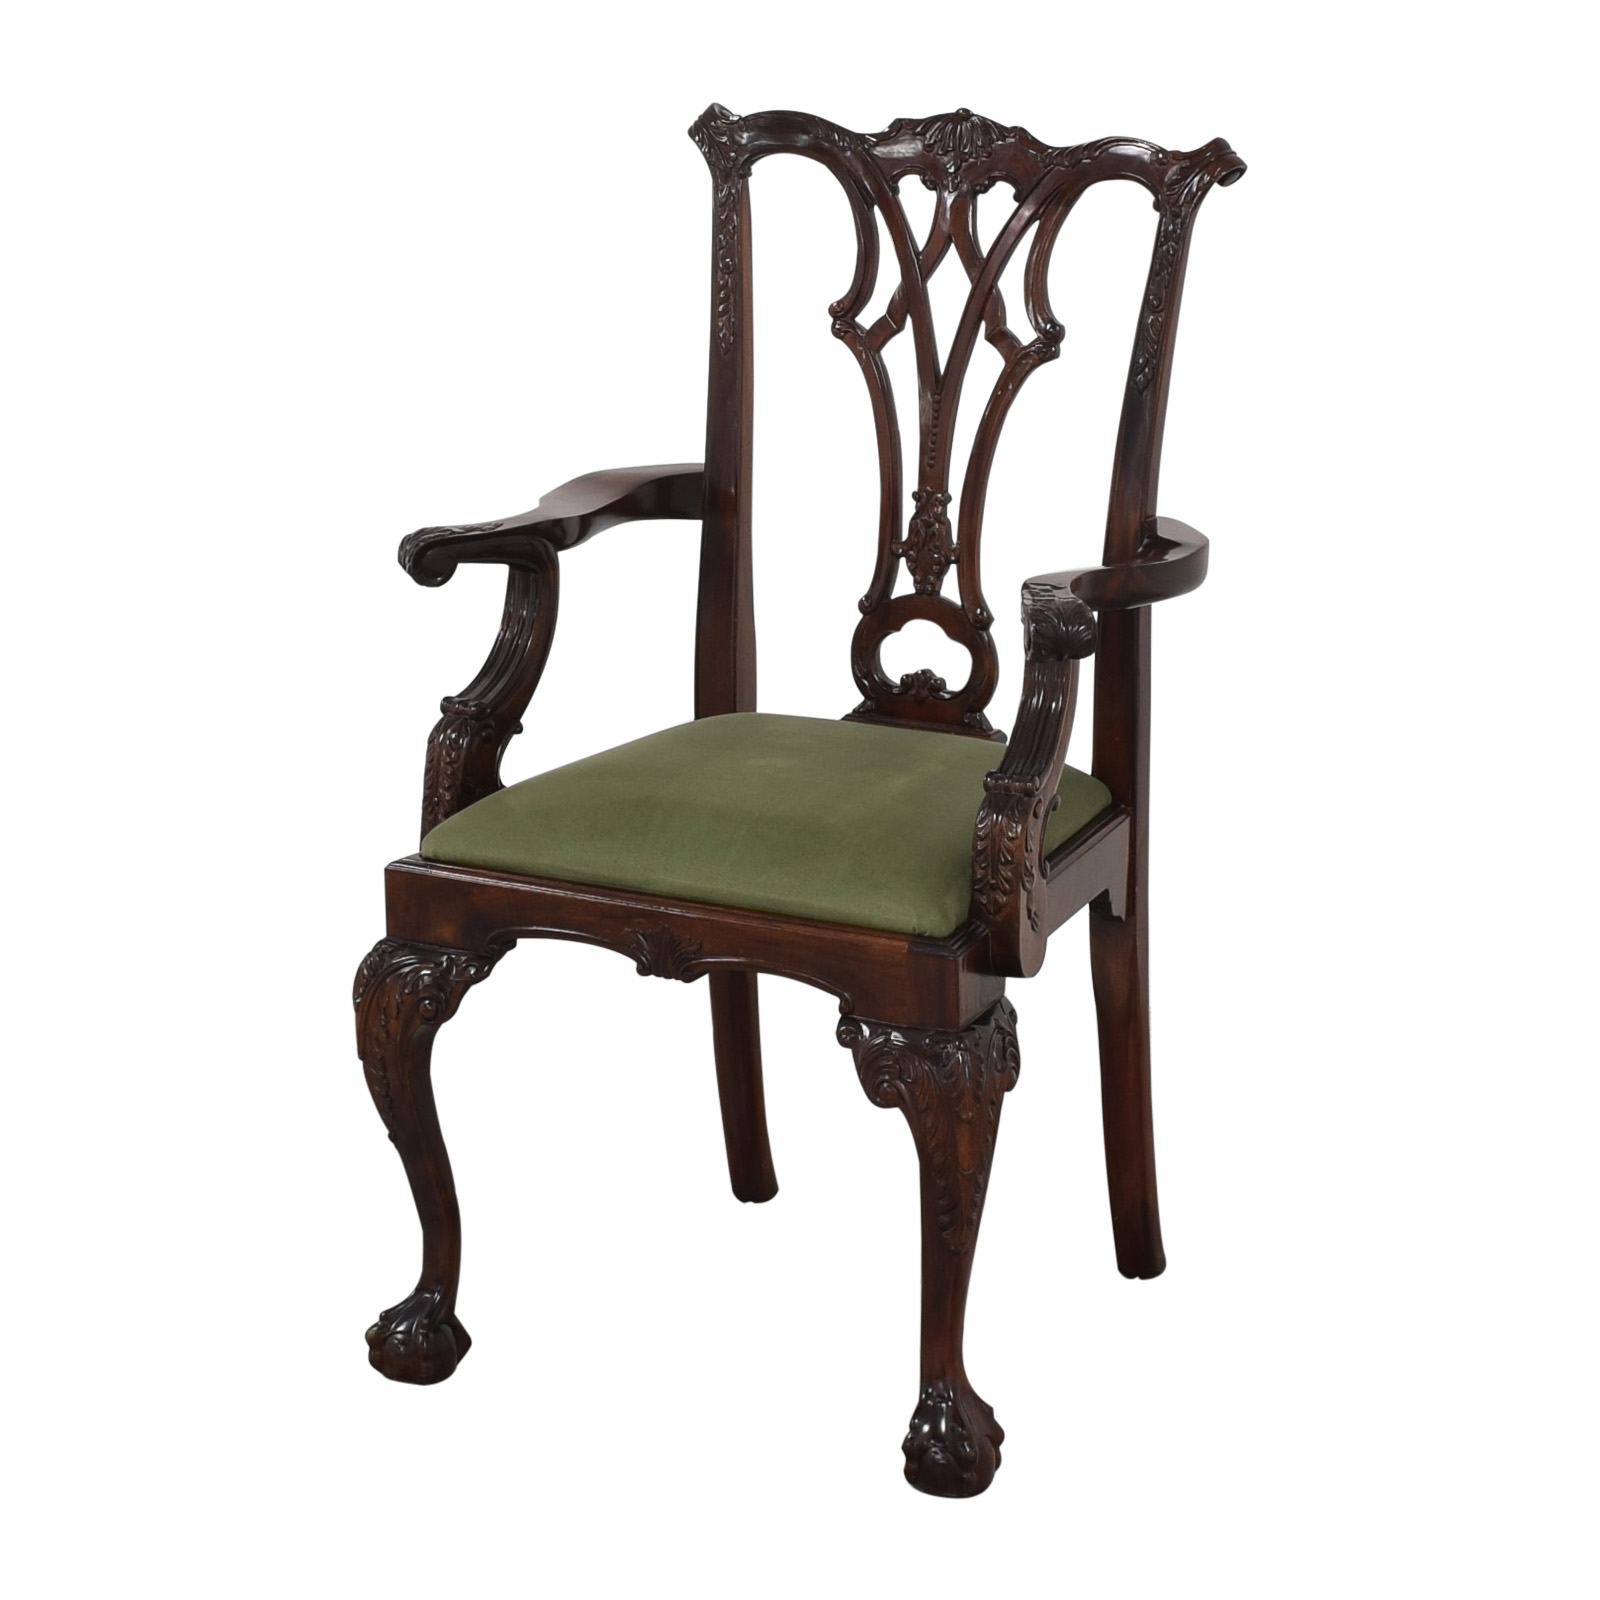 Greenbaum Interiors Queen Anne Style Dining Arm Chairs used